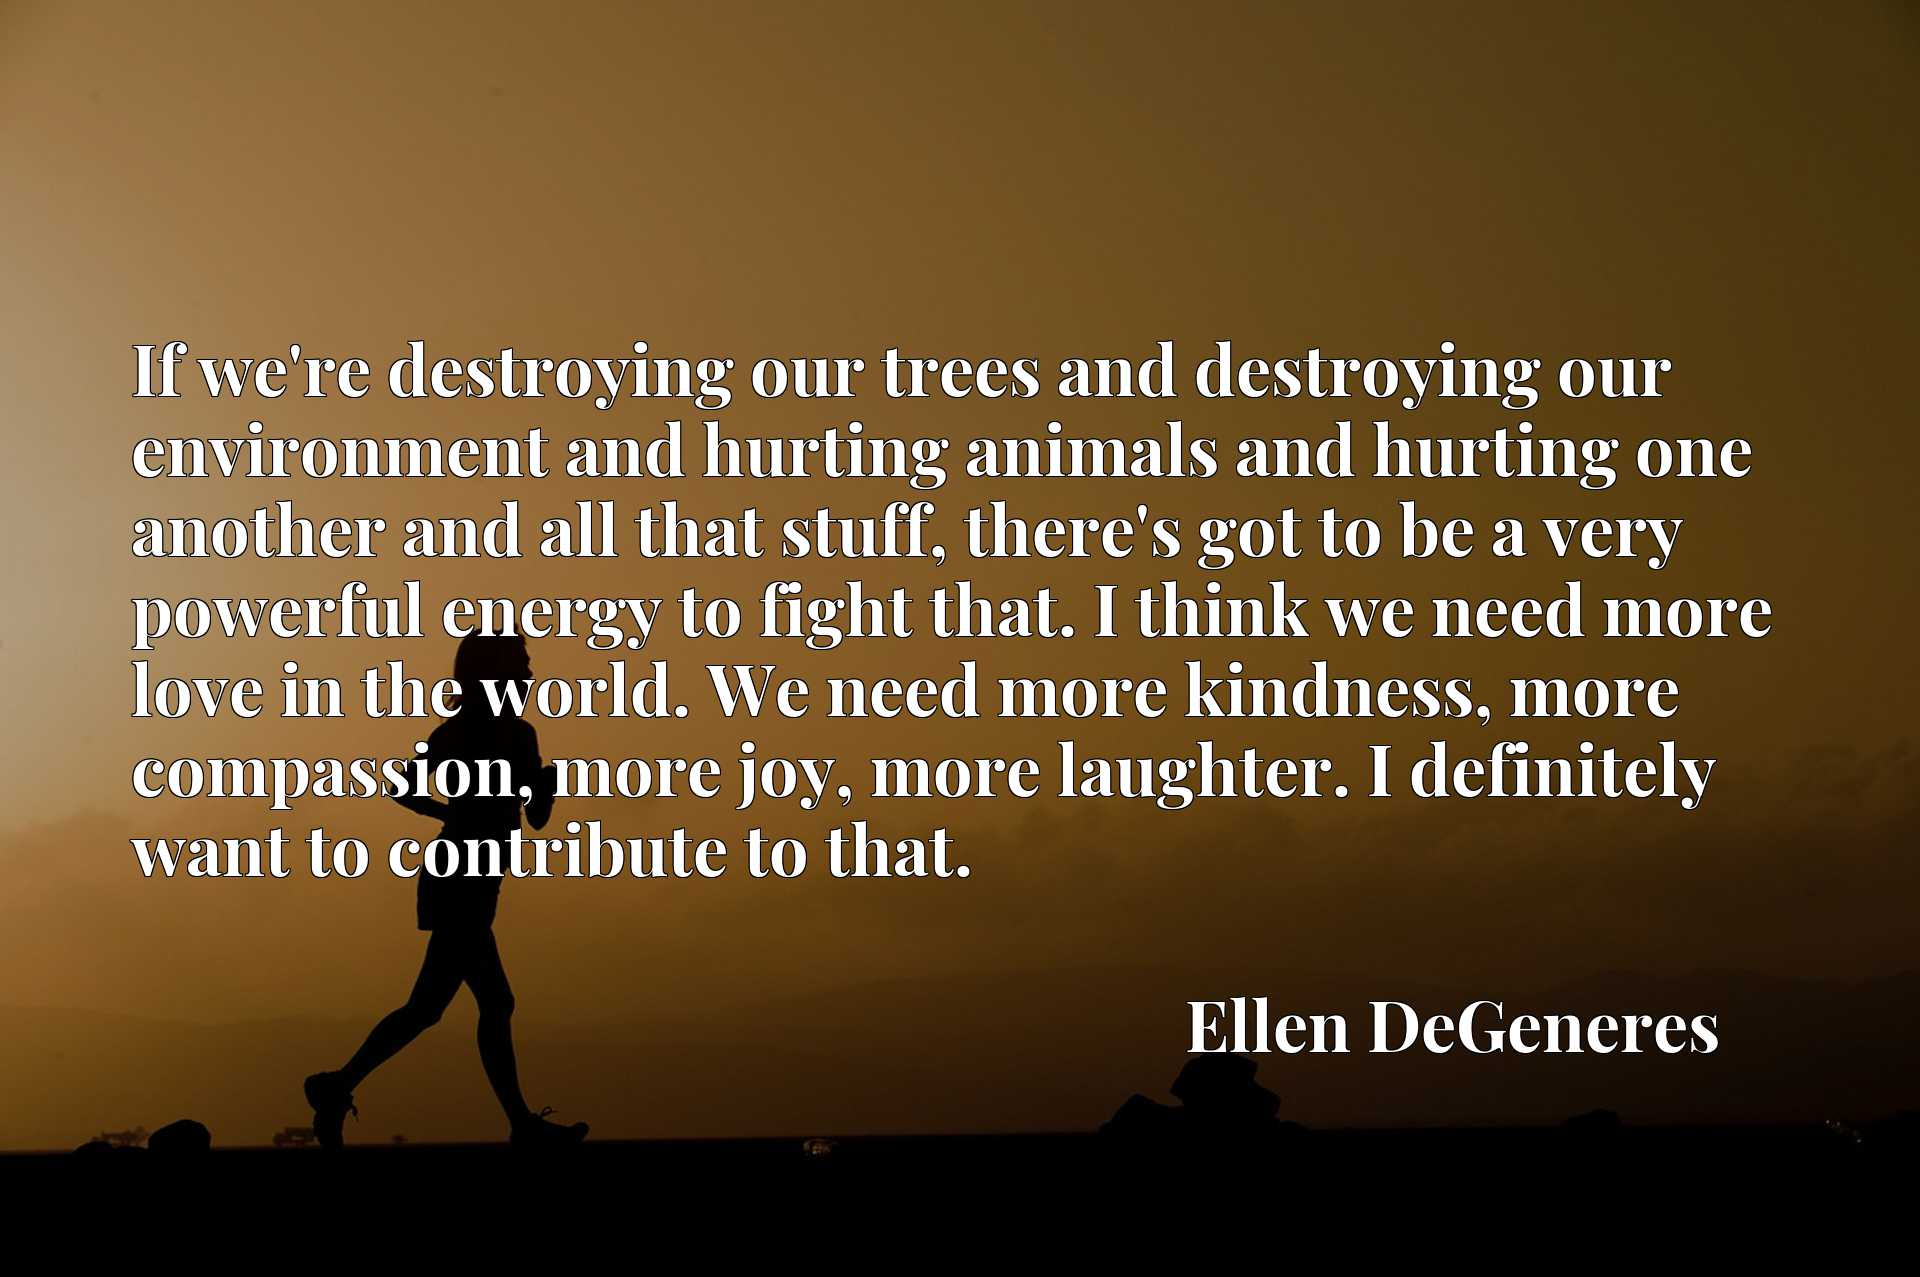 If we're destroying our trees and destroying our environment and hurting animals and hurting one another and all that stuff, there's got to be a very powerful energy to fight that. I think we need more love in the world. We need more kindness, more compassion, more joy, more laughter. I definitely want to contribute to that.